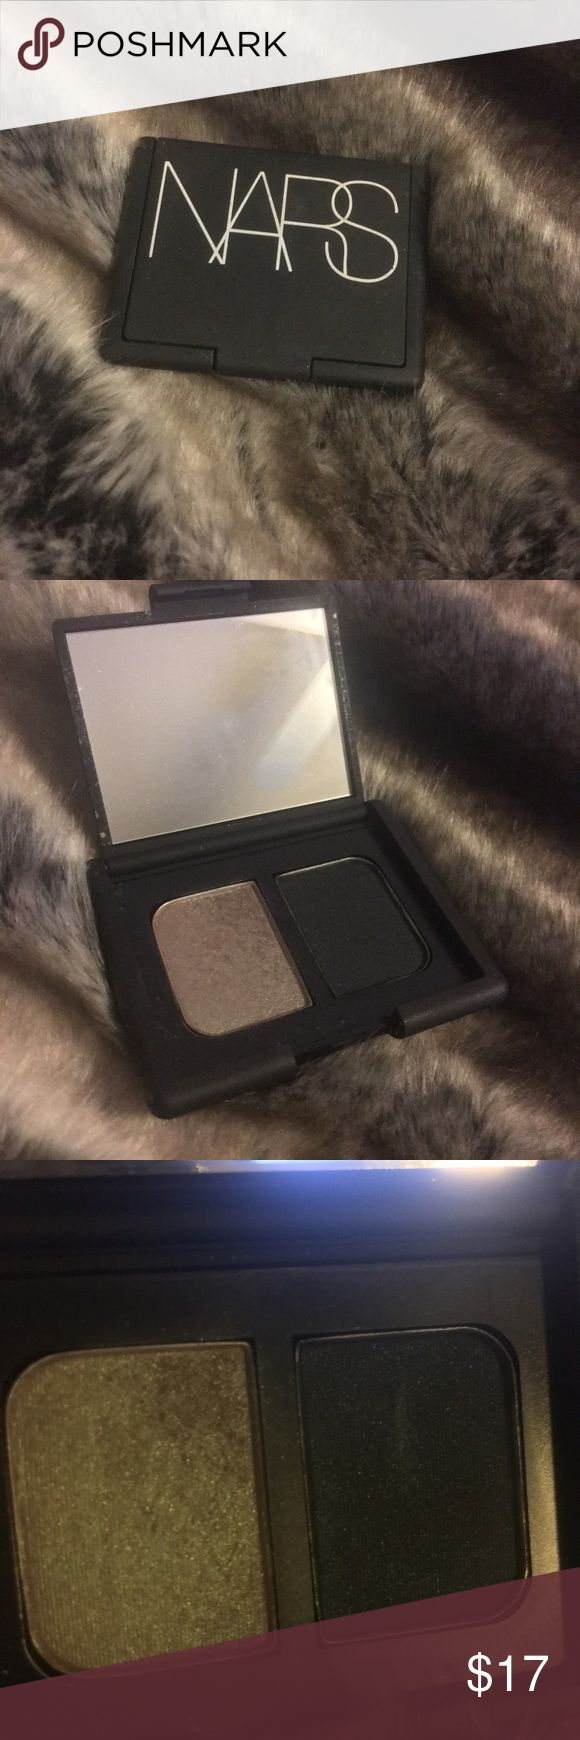 💐[nars] eyeshadow duo Used once!   〰〰〰 ▫️all items come from a smoke-free environment🚭 ▪️no trades or holds ▫️price firm, no offers please NARS Makeup Eyeshadow